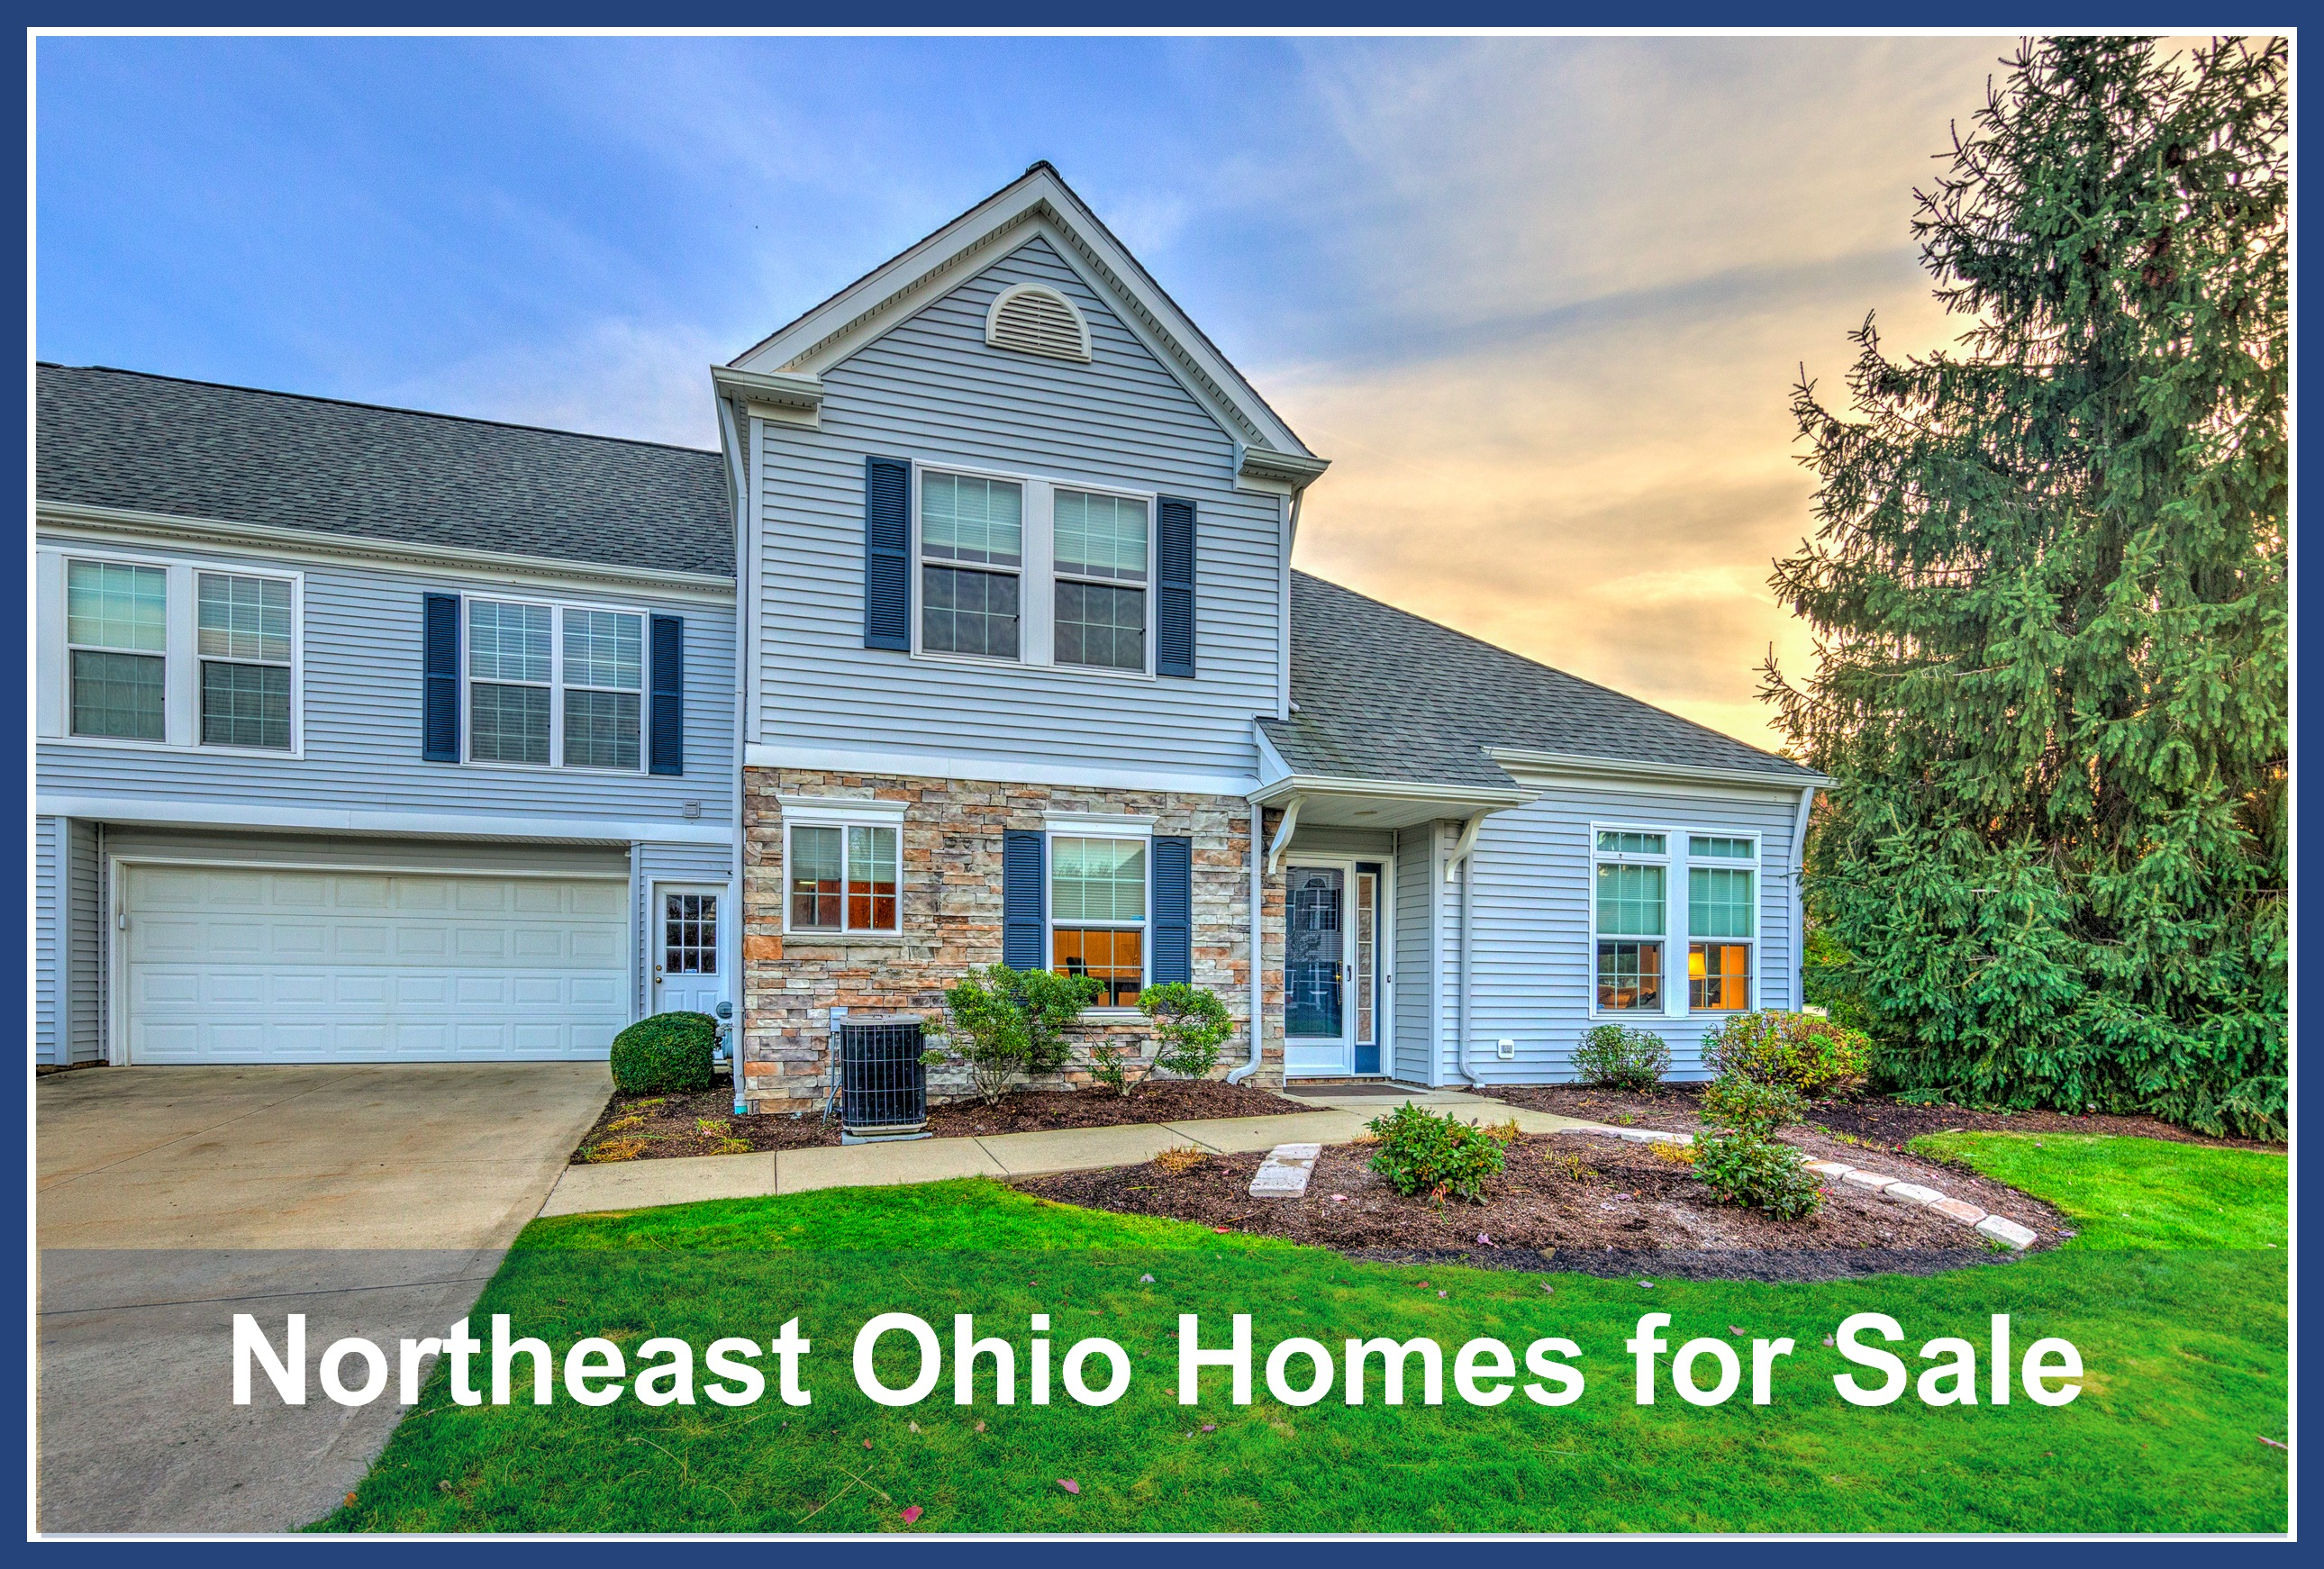 Northeast Ohio for Sale Homes